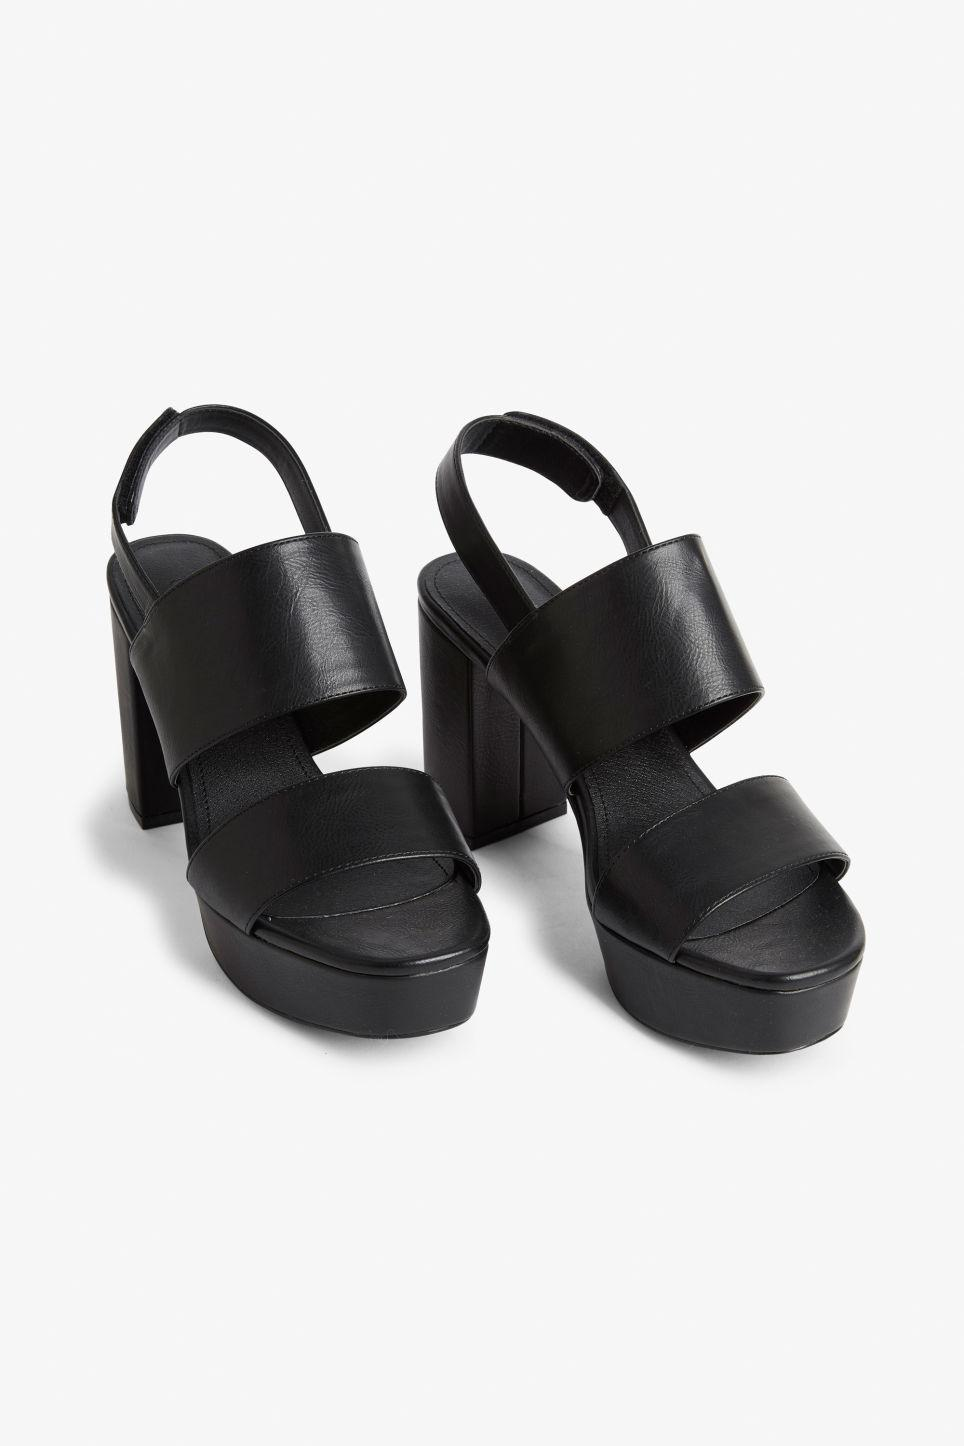 a8168f7e4cf5 Monki Platform Heels in Black - Lyst